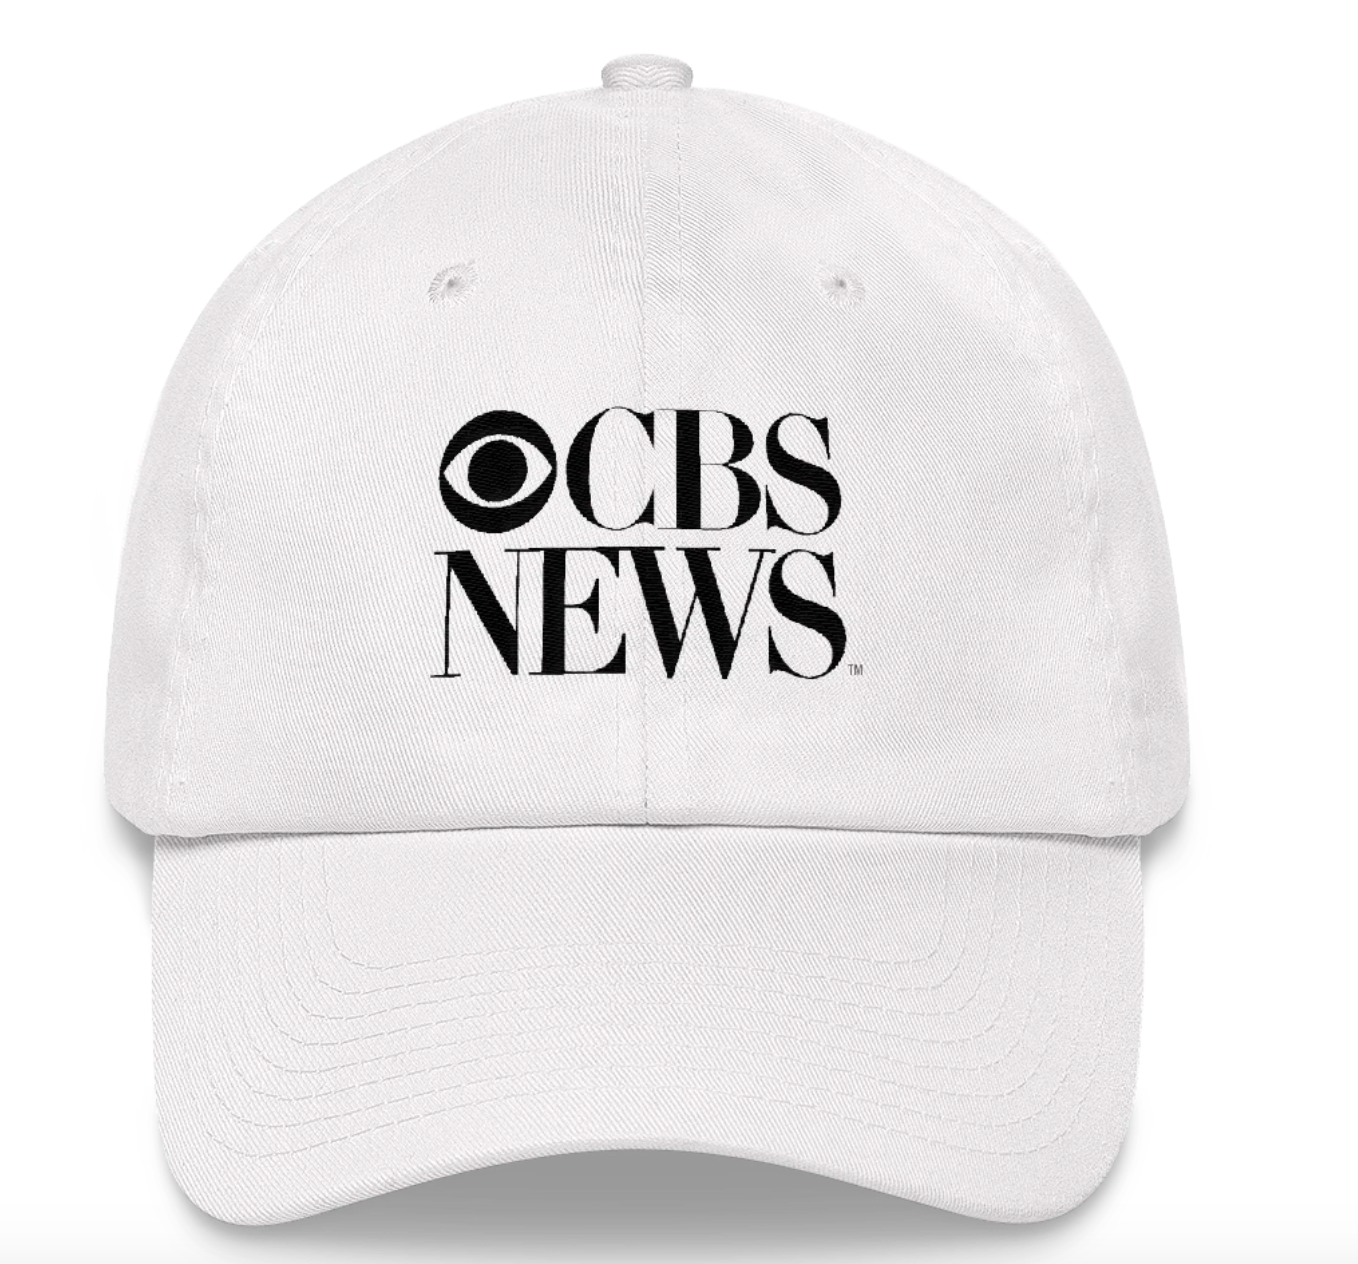 White baseball cap embroidered with CBS News logo in black